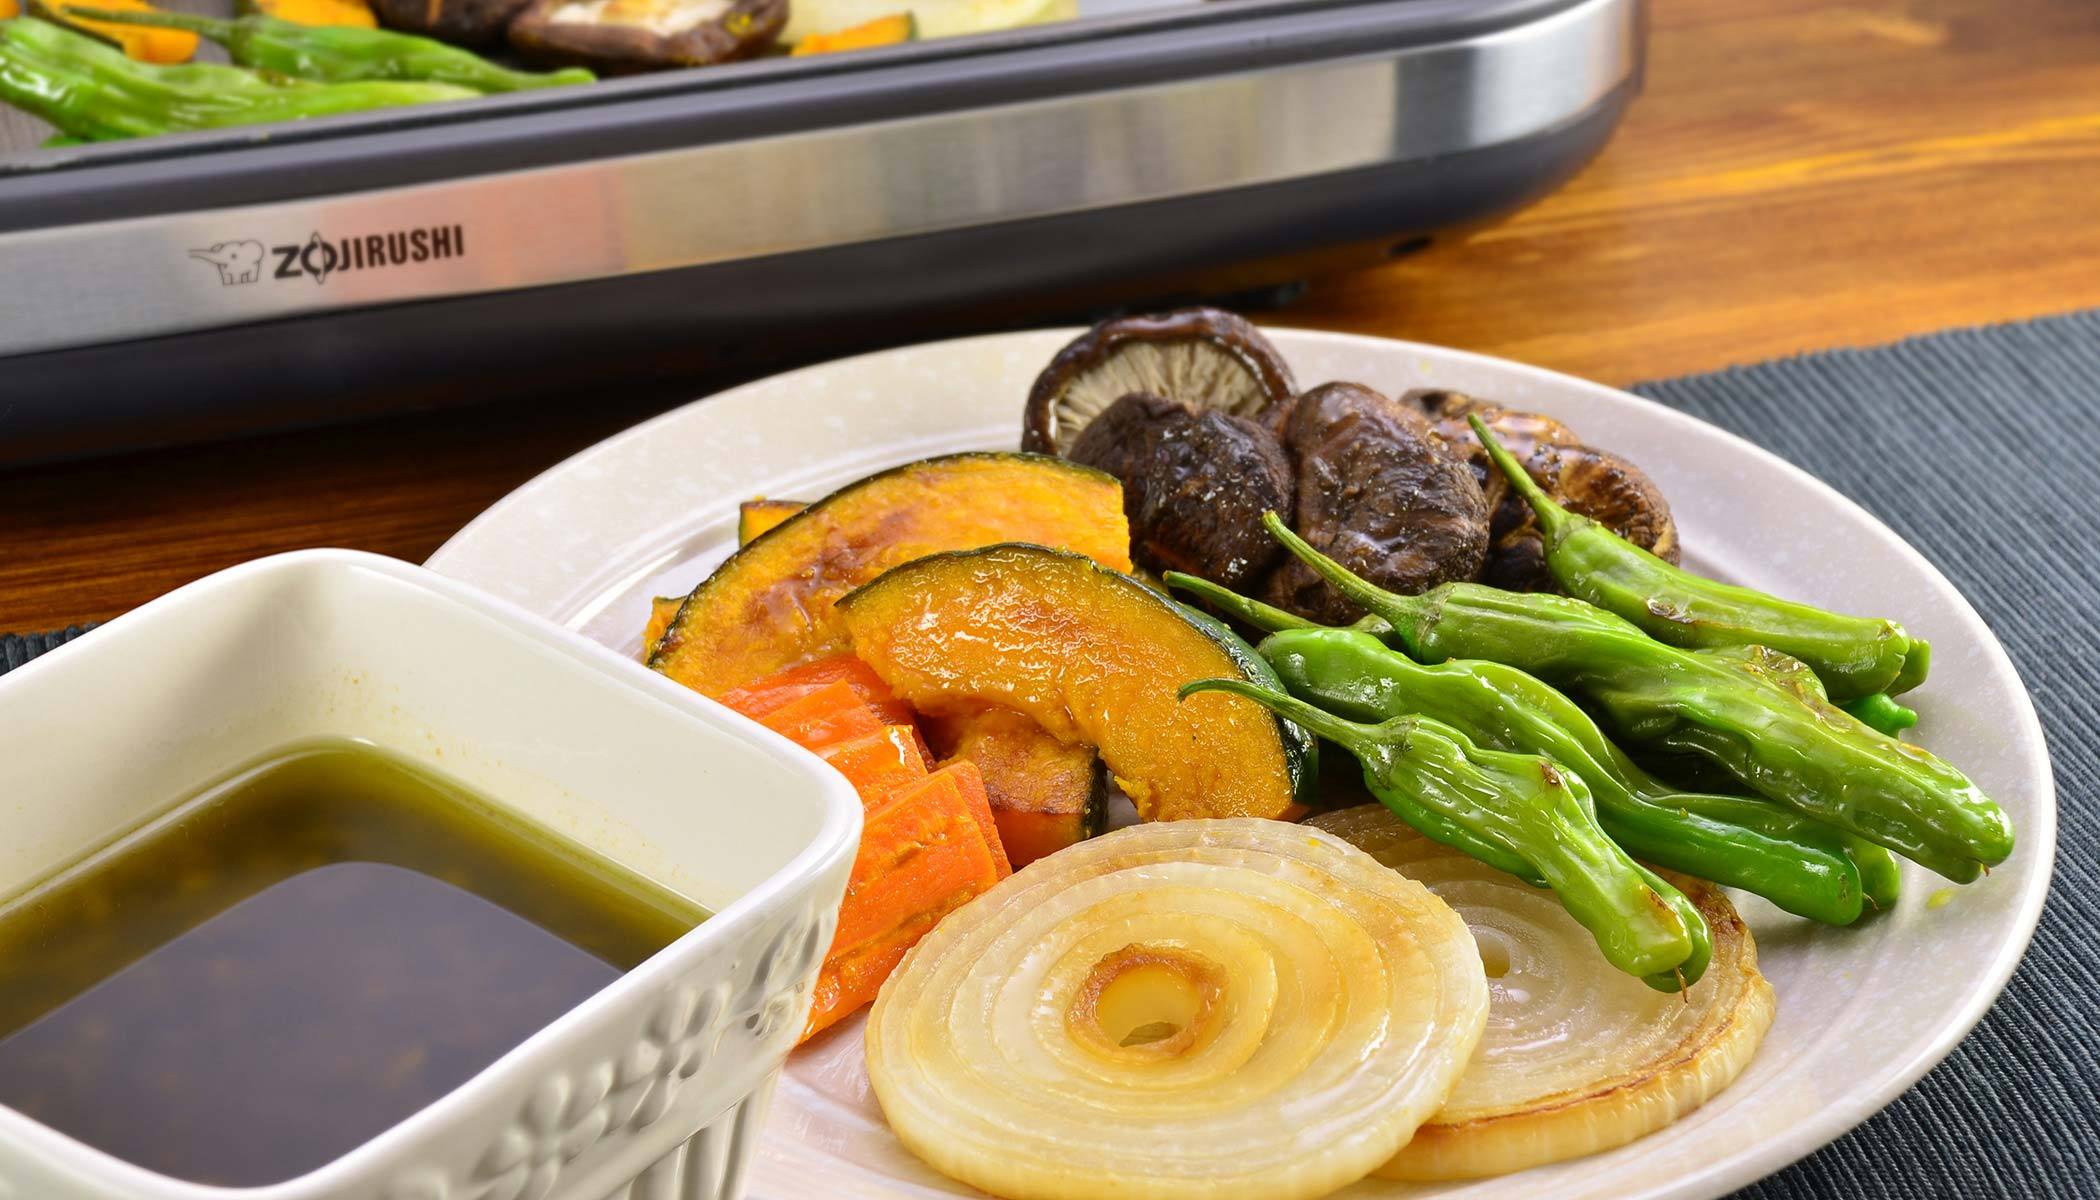 Grilled Vegetables with Balsamic Vinegar Sauce